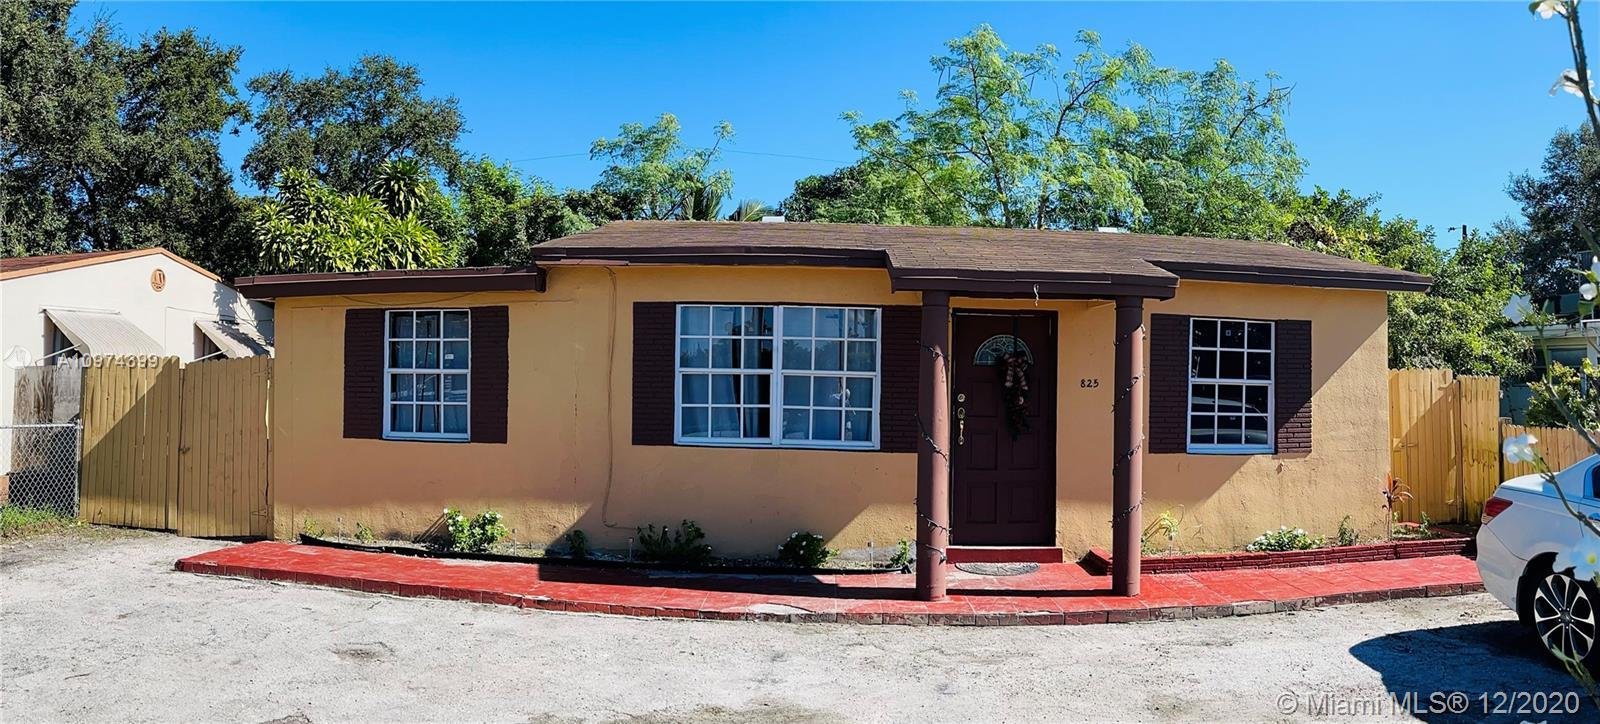 You hit the jackpot with this single family home or commercial use property! Previously operated as